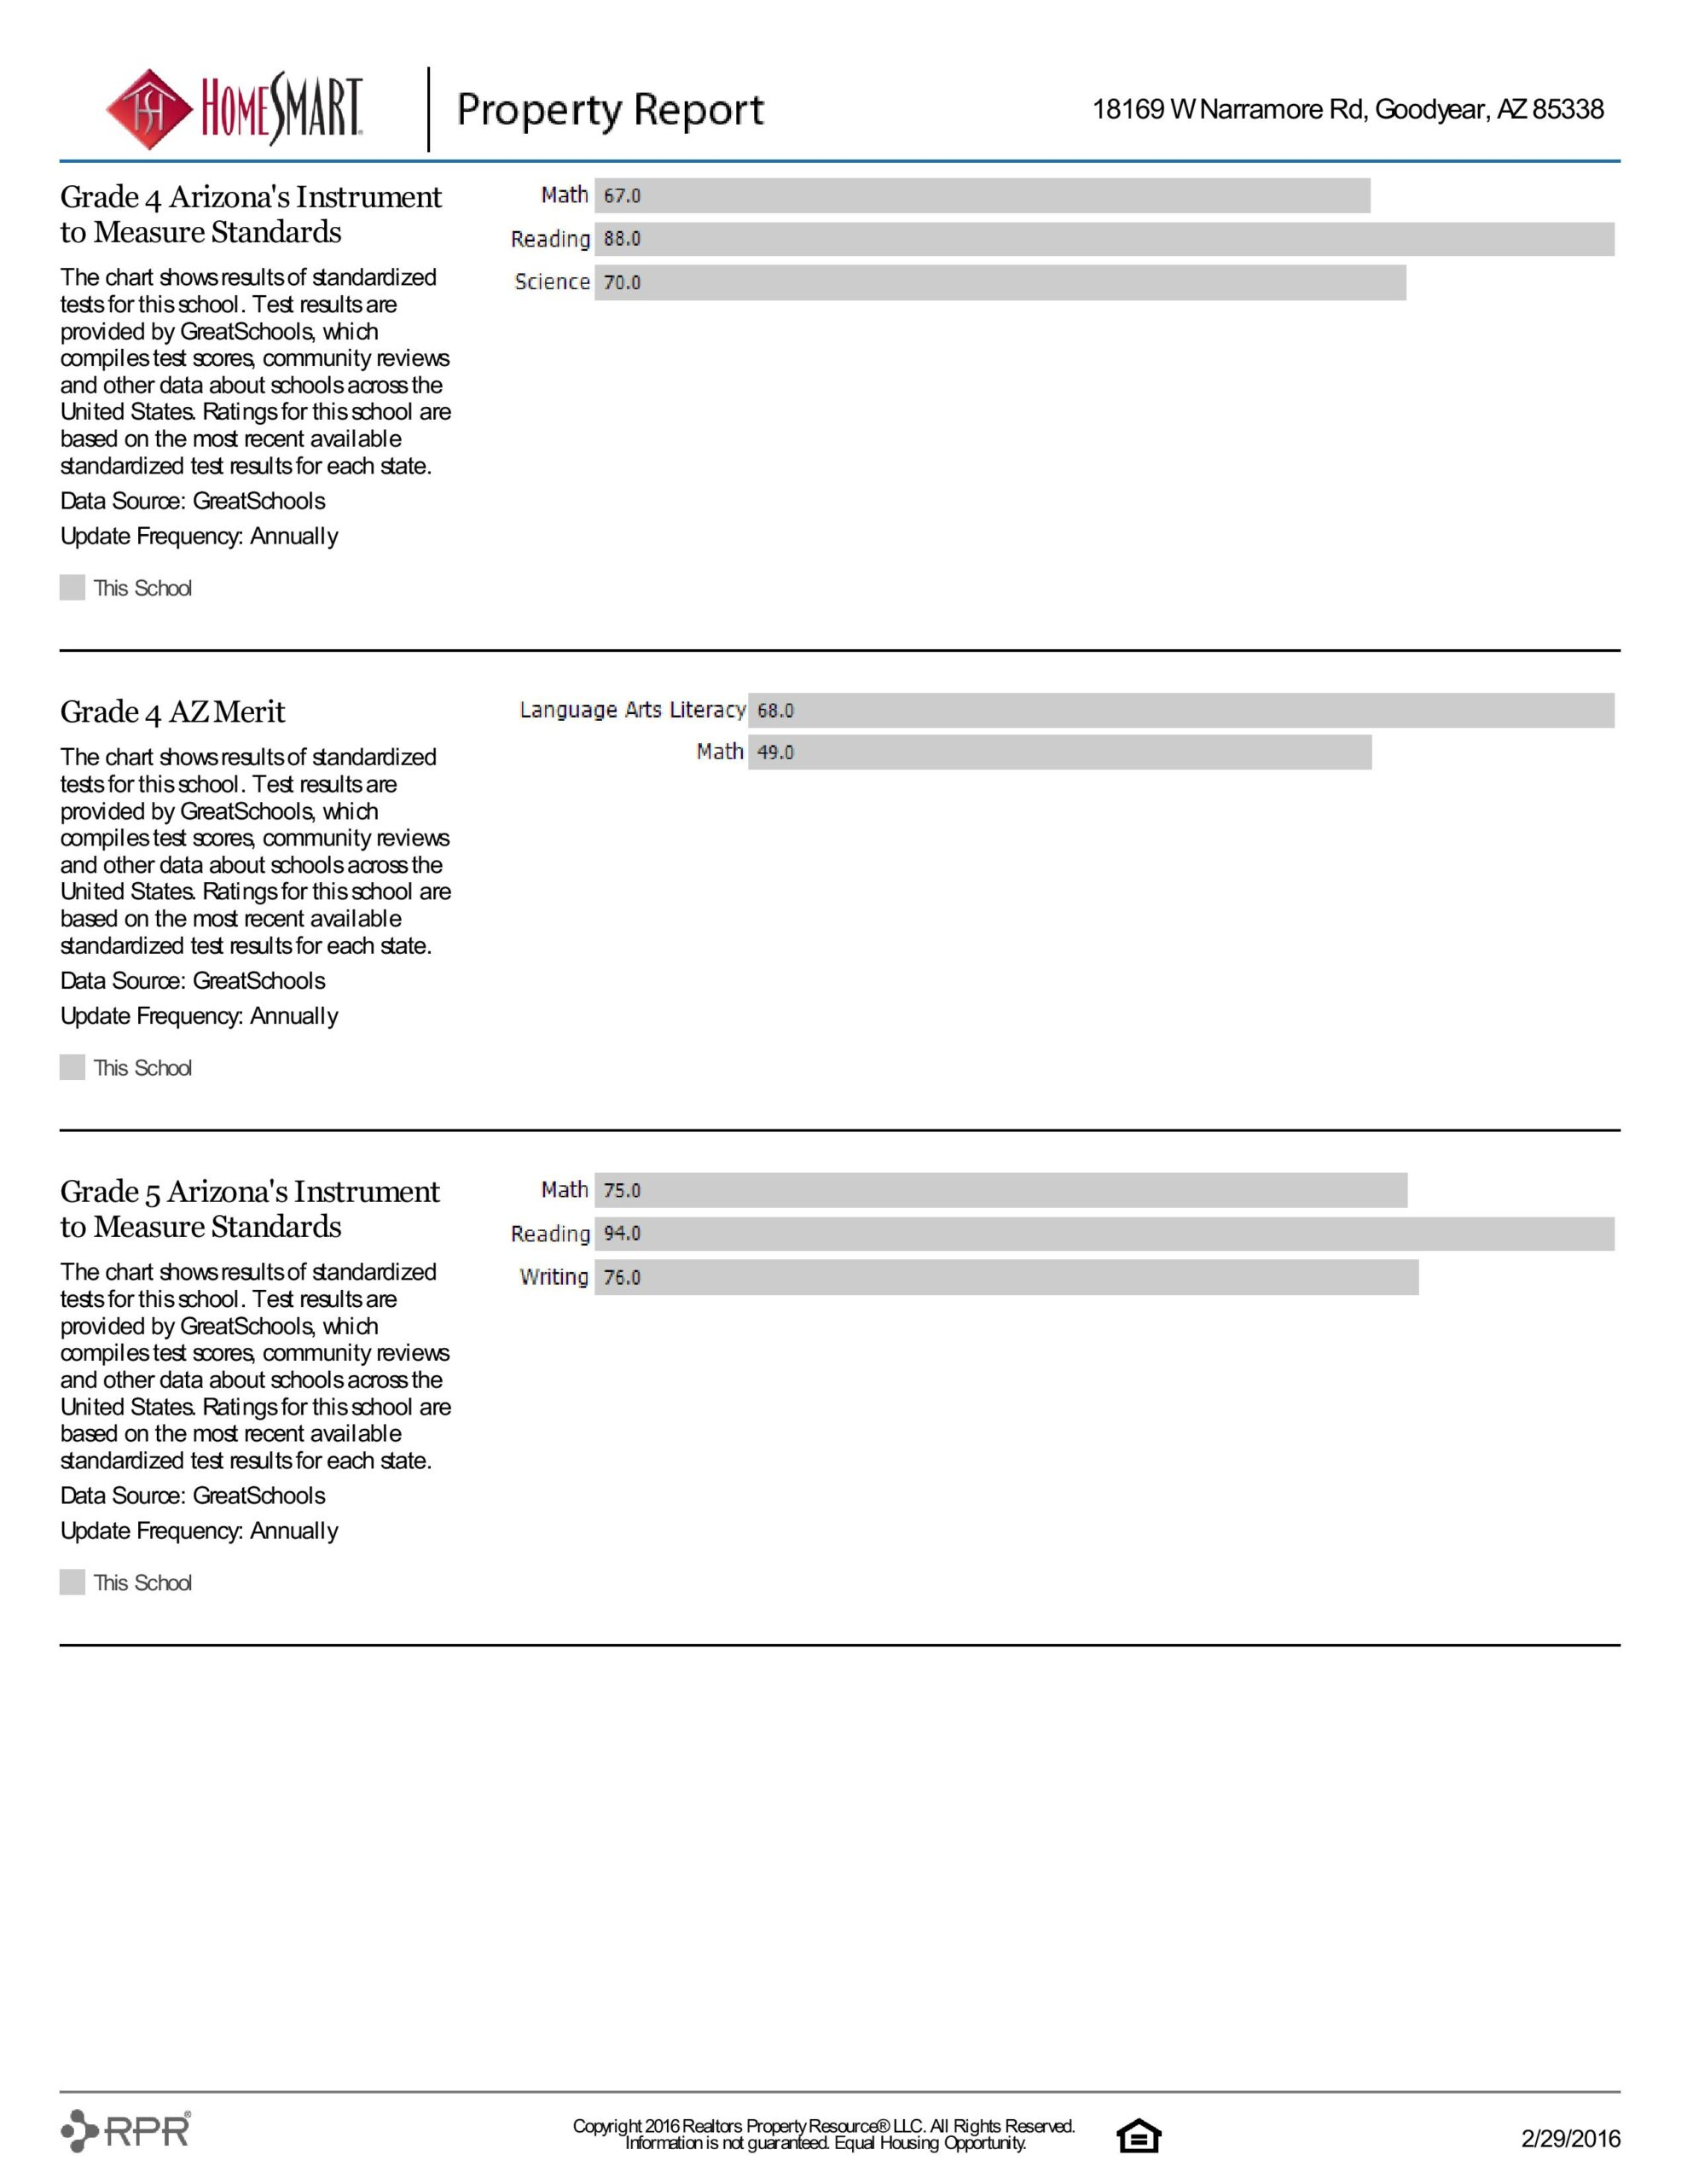 18169 W NARRAMORE RD PROPERTY REPORT-page-031